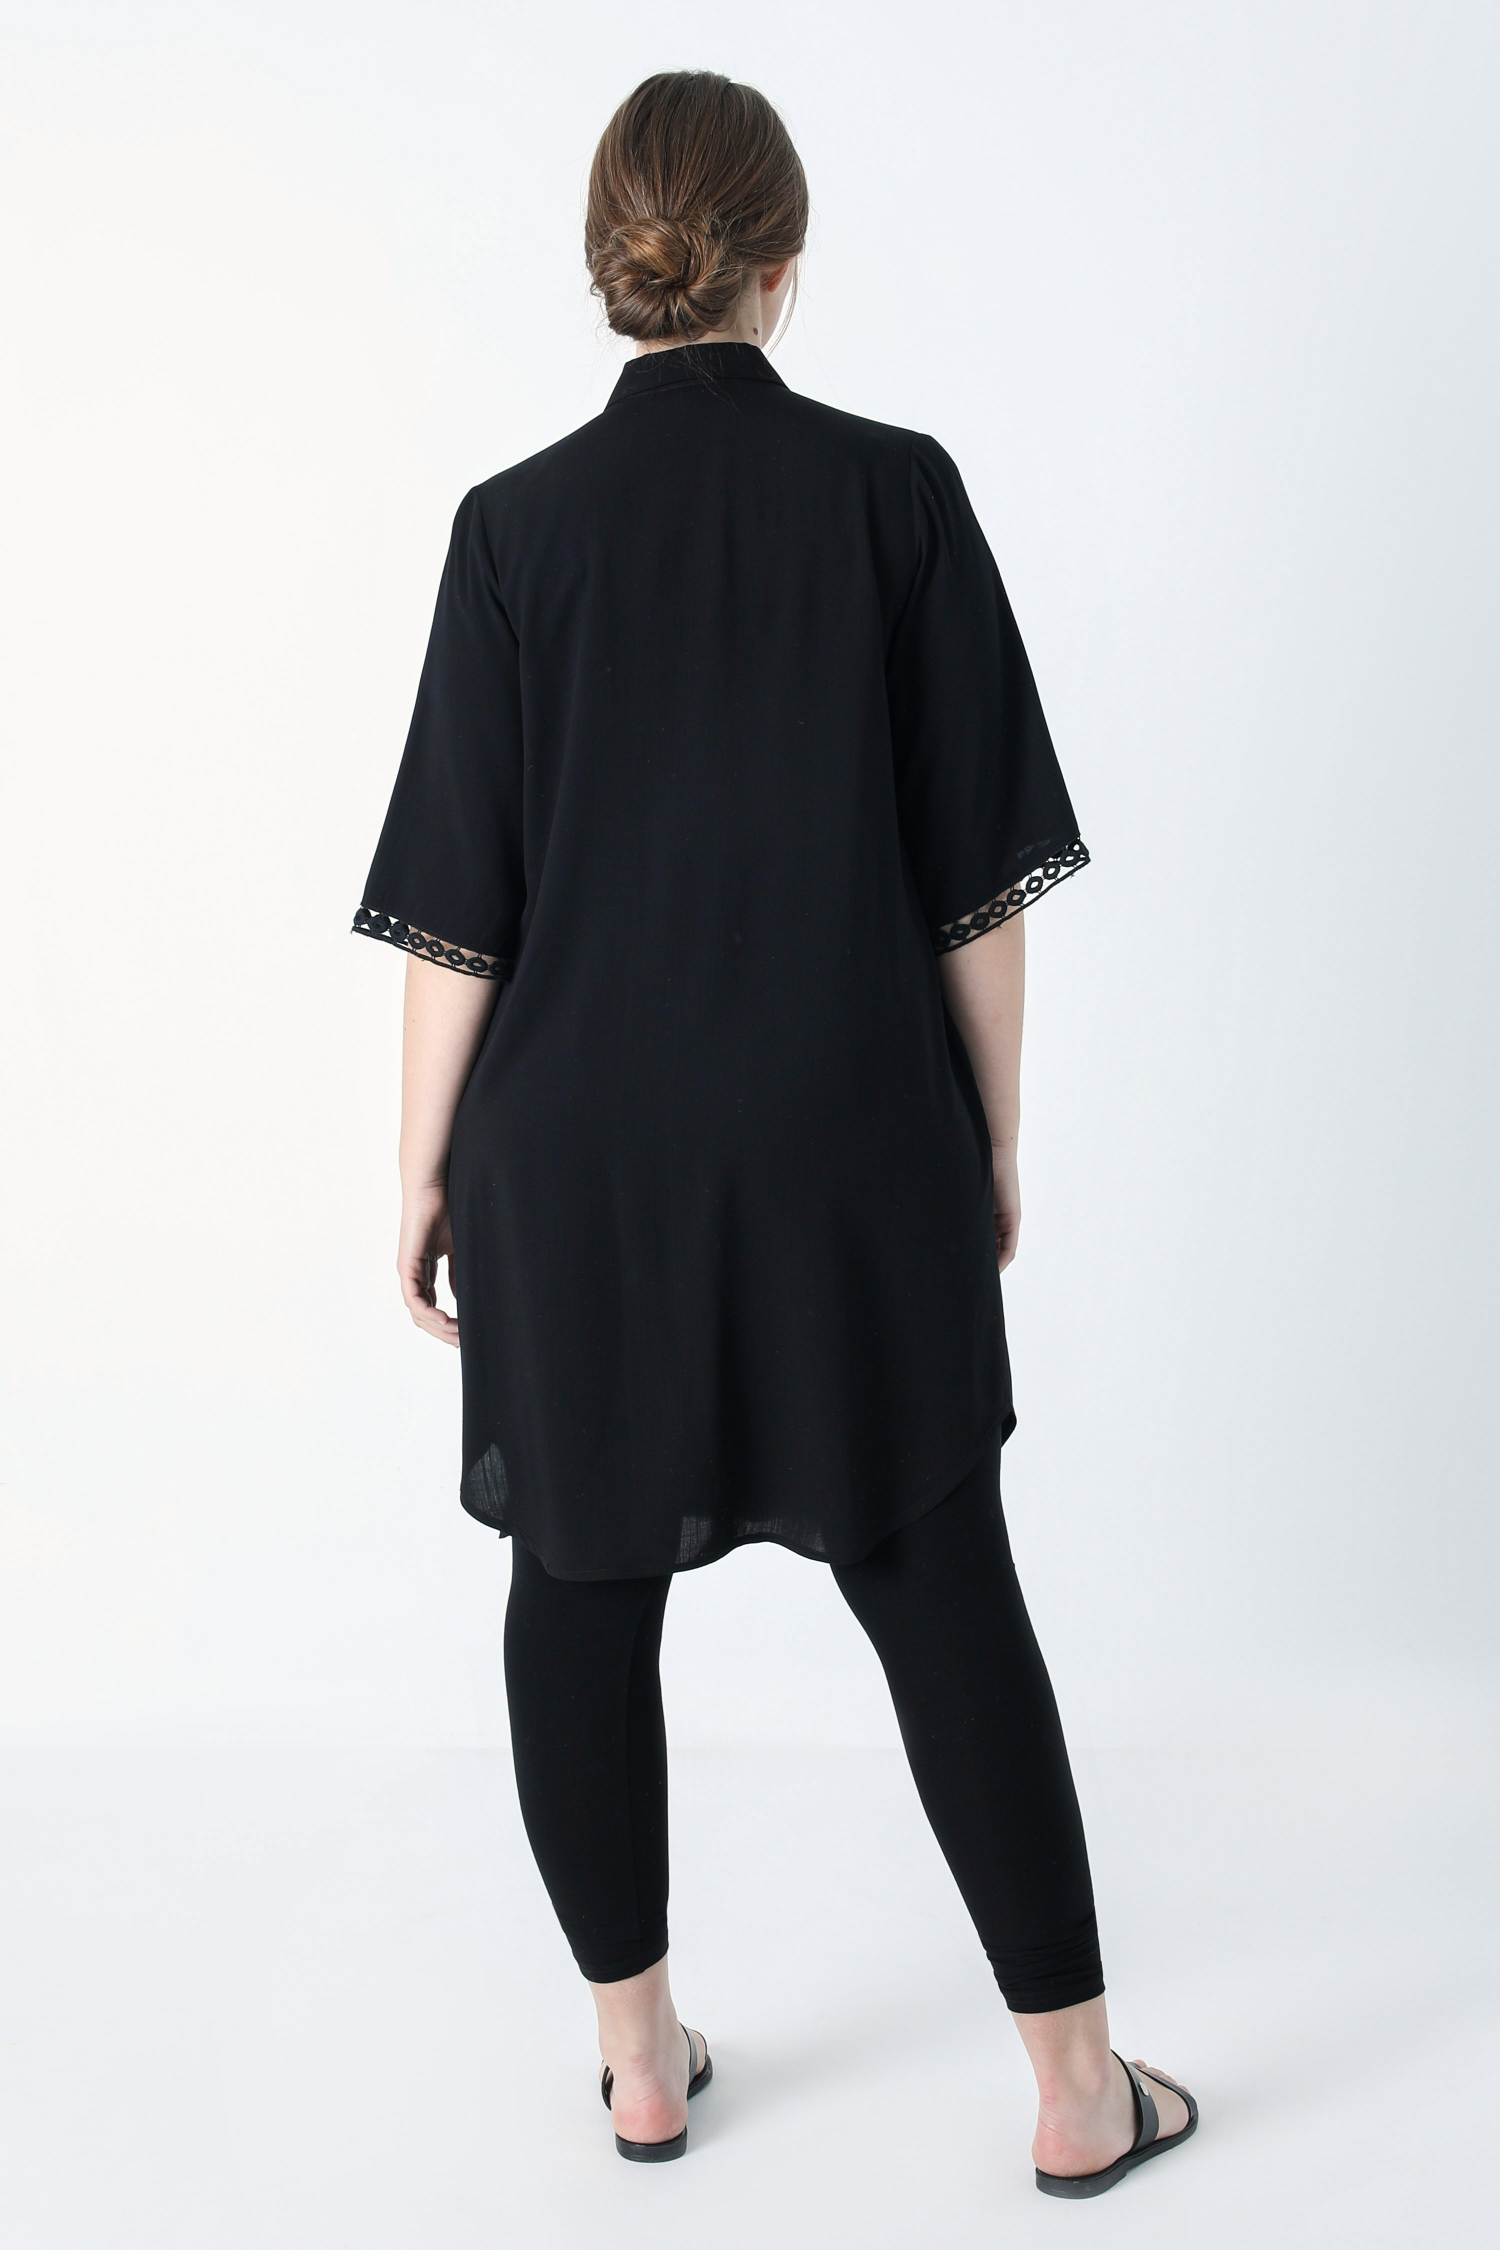 Long plain shirt with braid (Shipping 25/31 March).